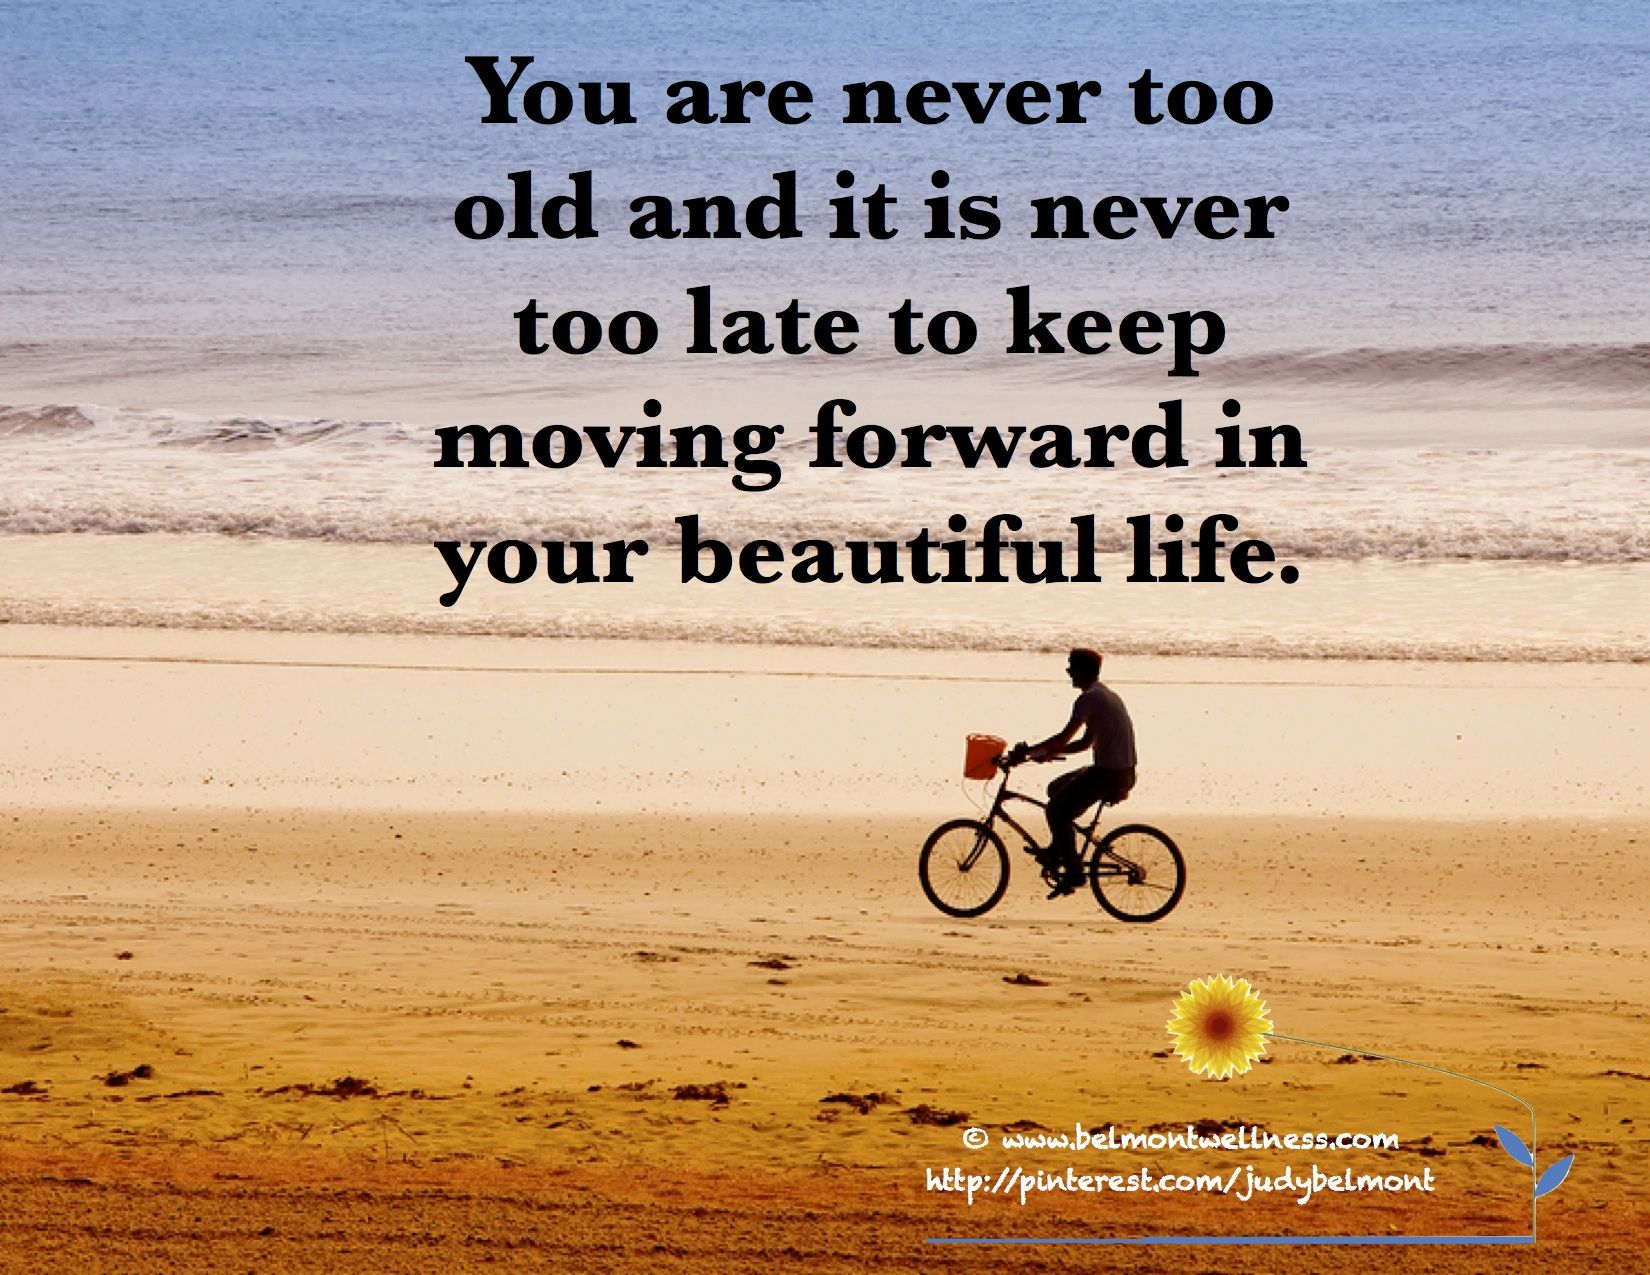 Pinterest Life Quotes: You Are Never Too Old And It Is Never Too Late To Keep